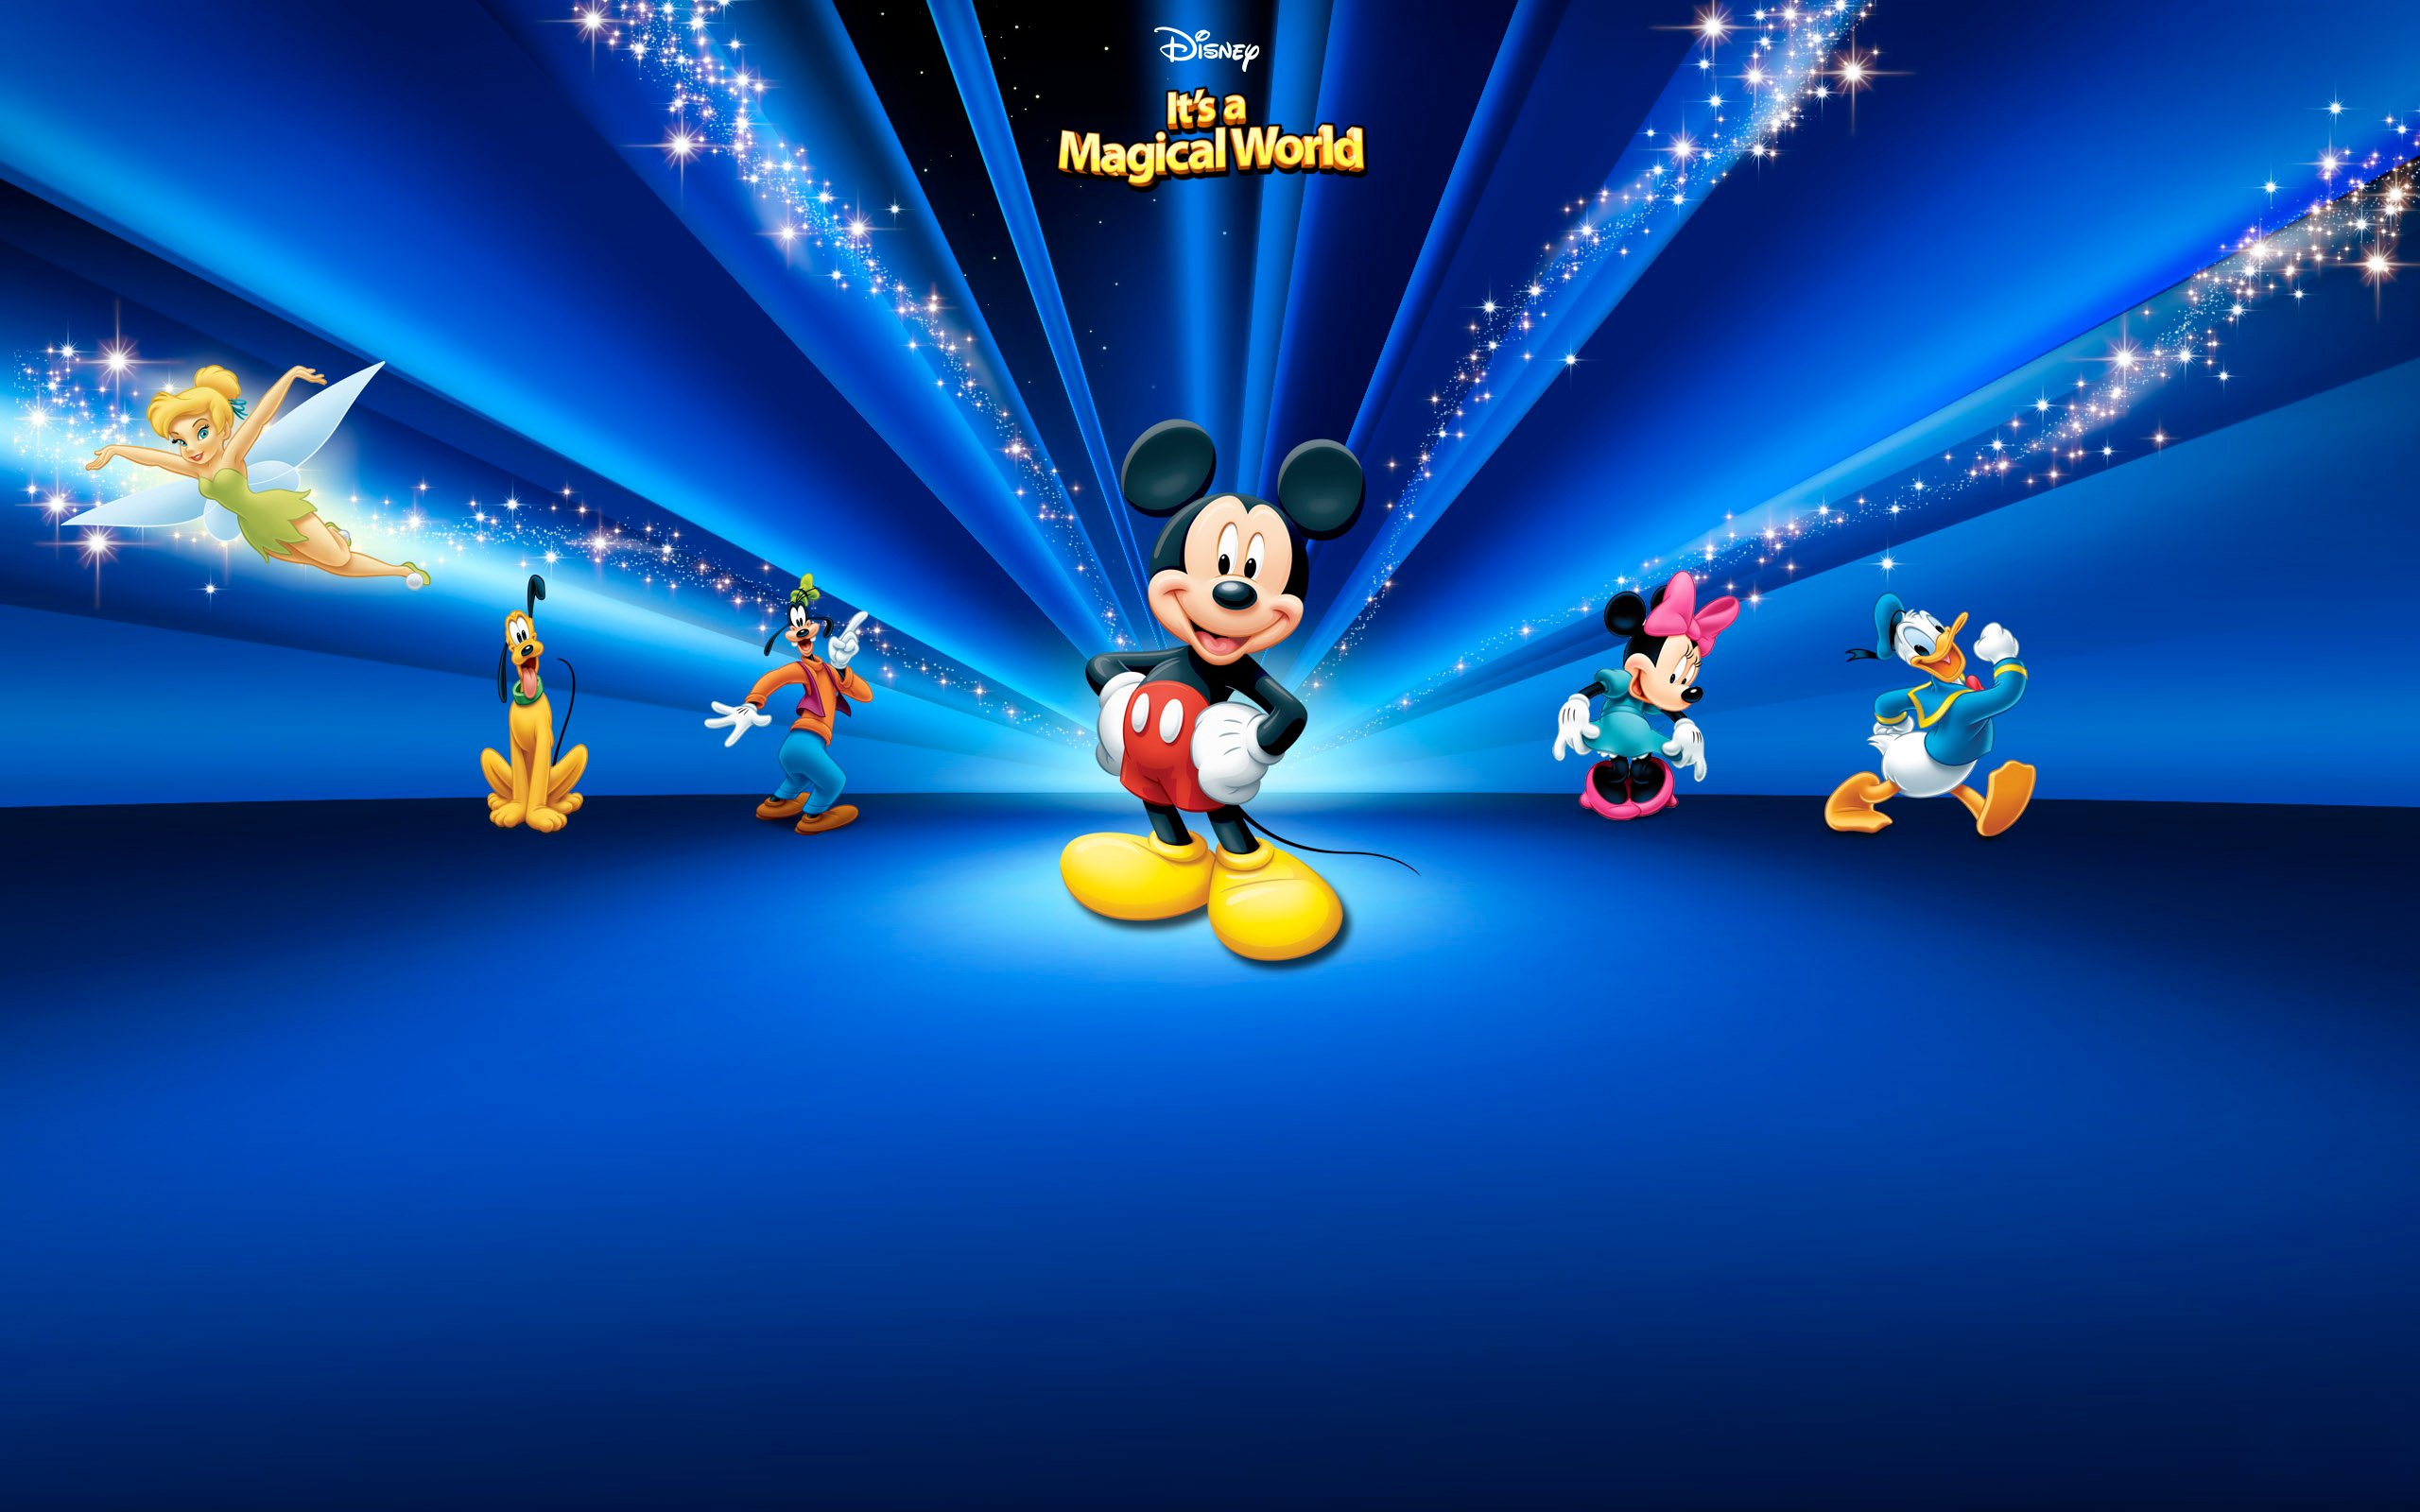 walt disney wallpaper widescreen is high definition wallpaper you can 2560x1600